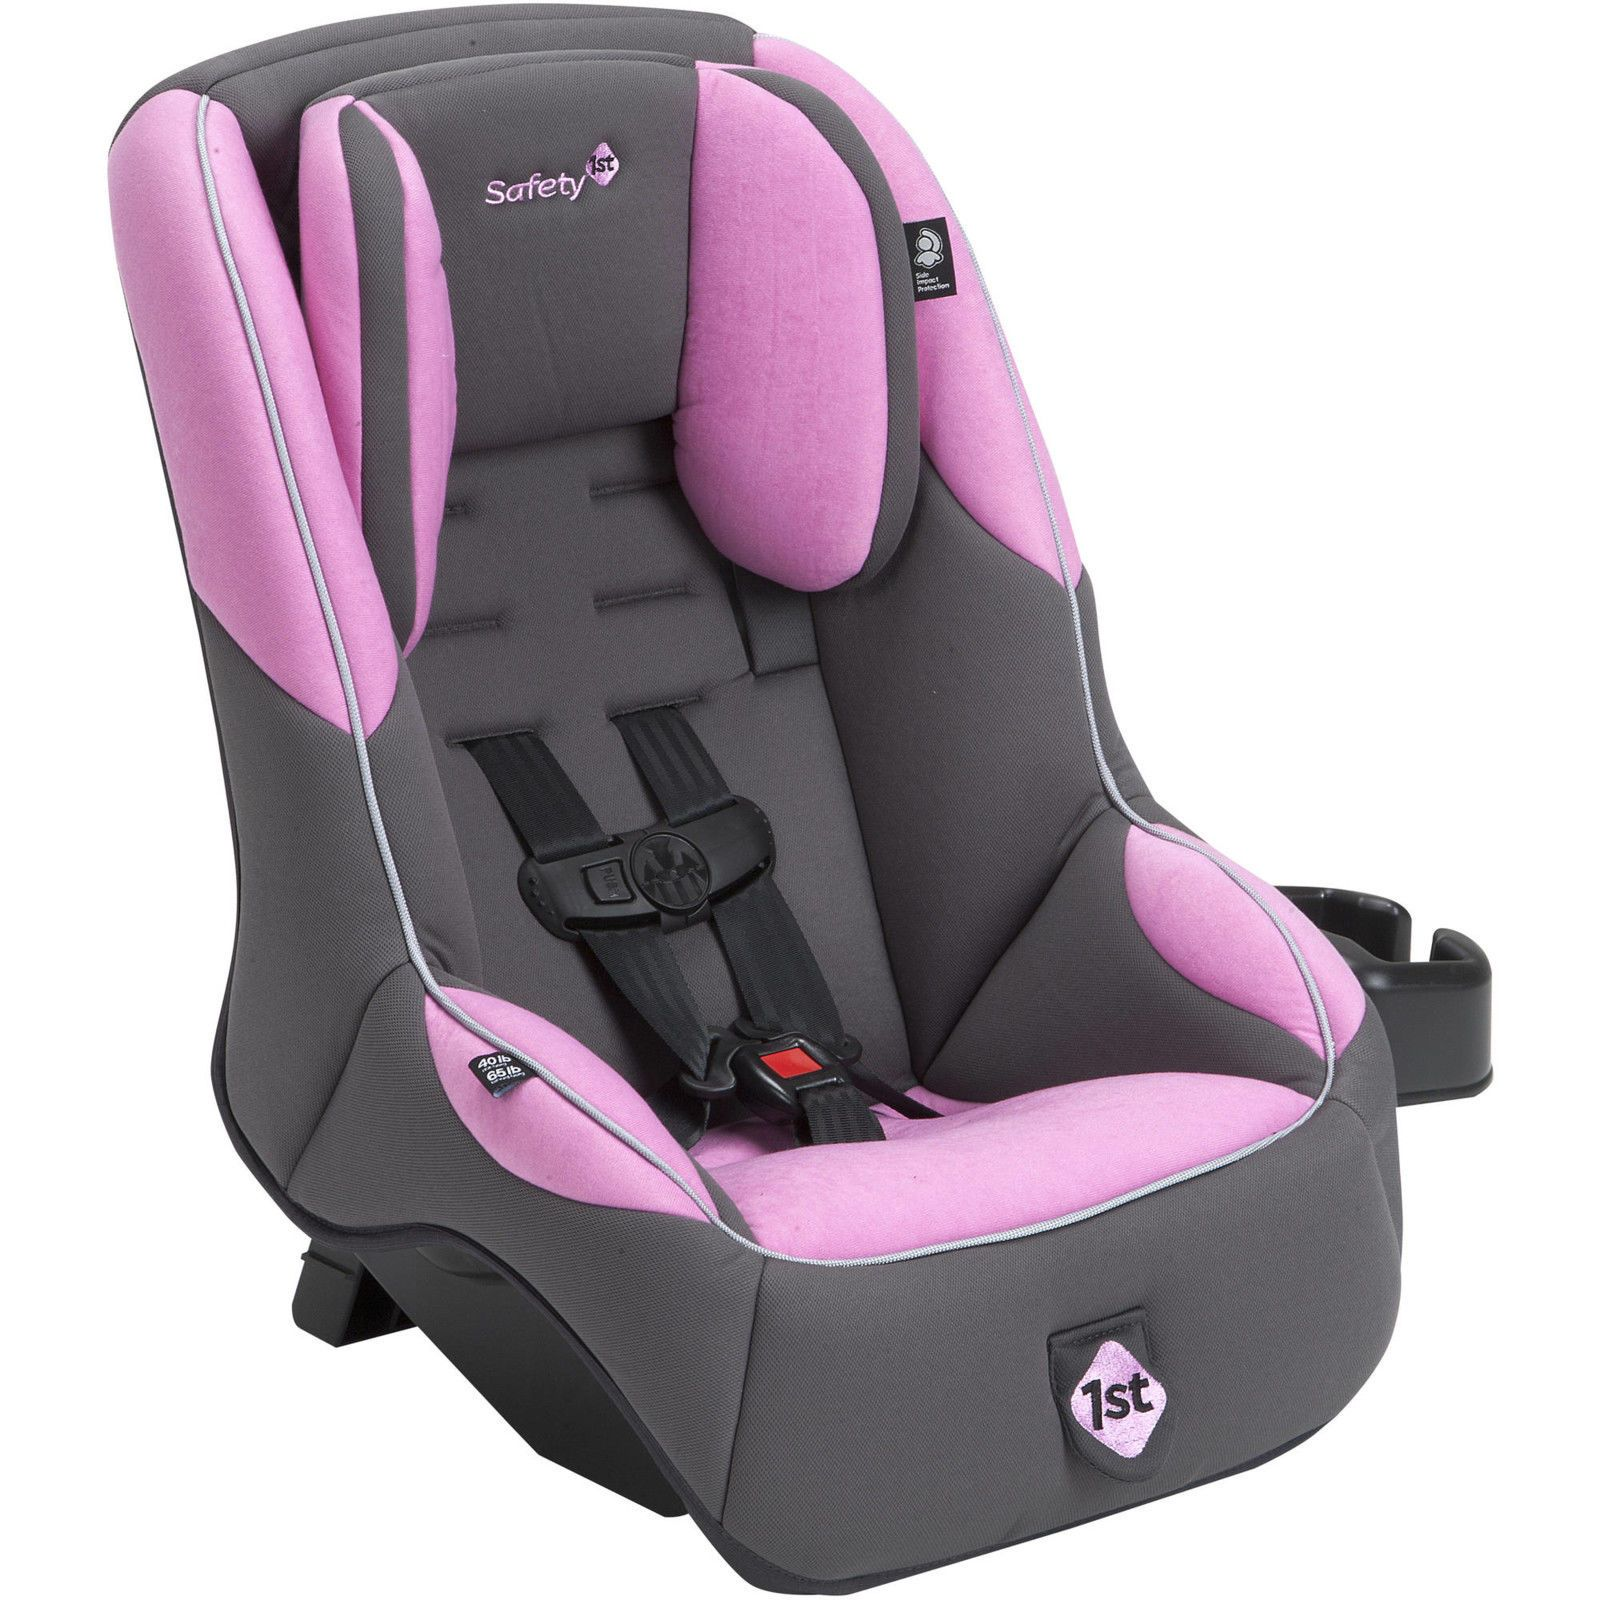 Safety 1st Guide 65 Sport Convertible Car Seat Car seats